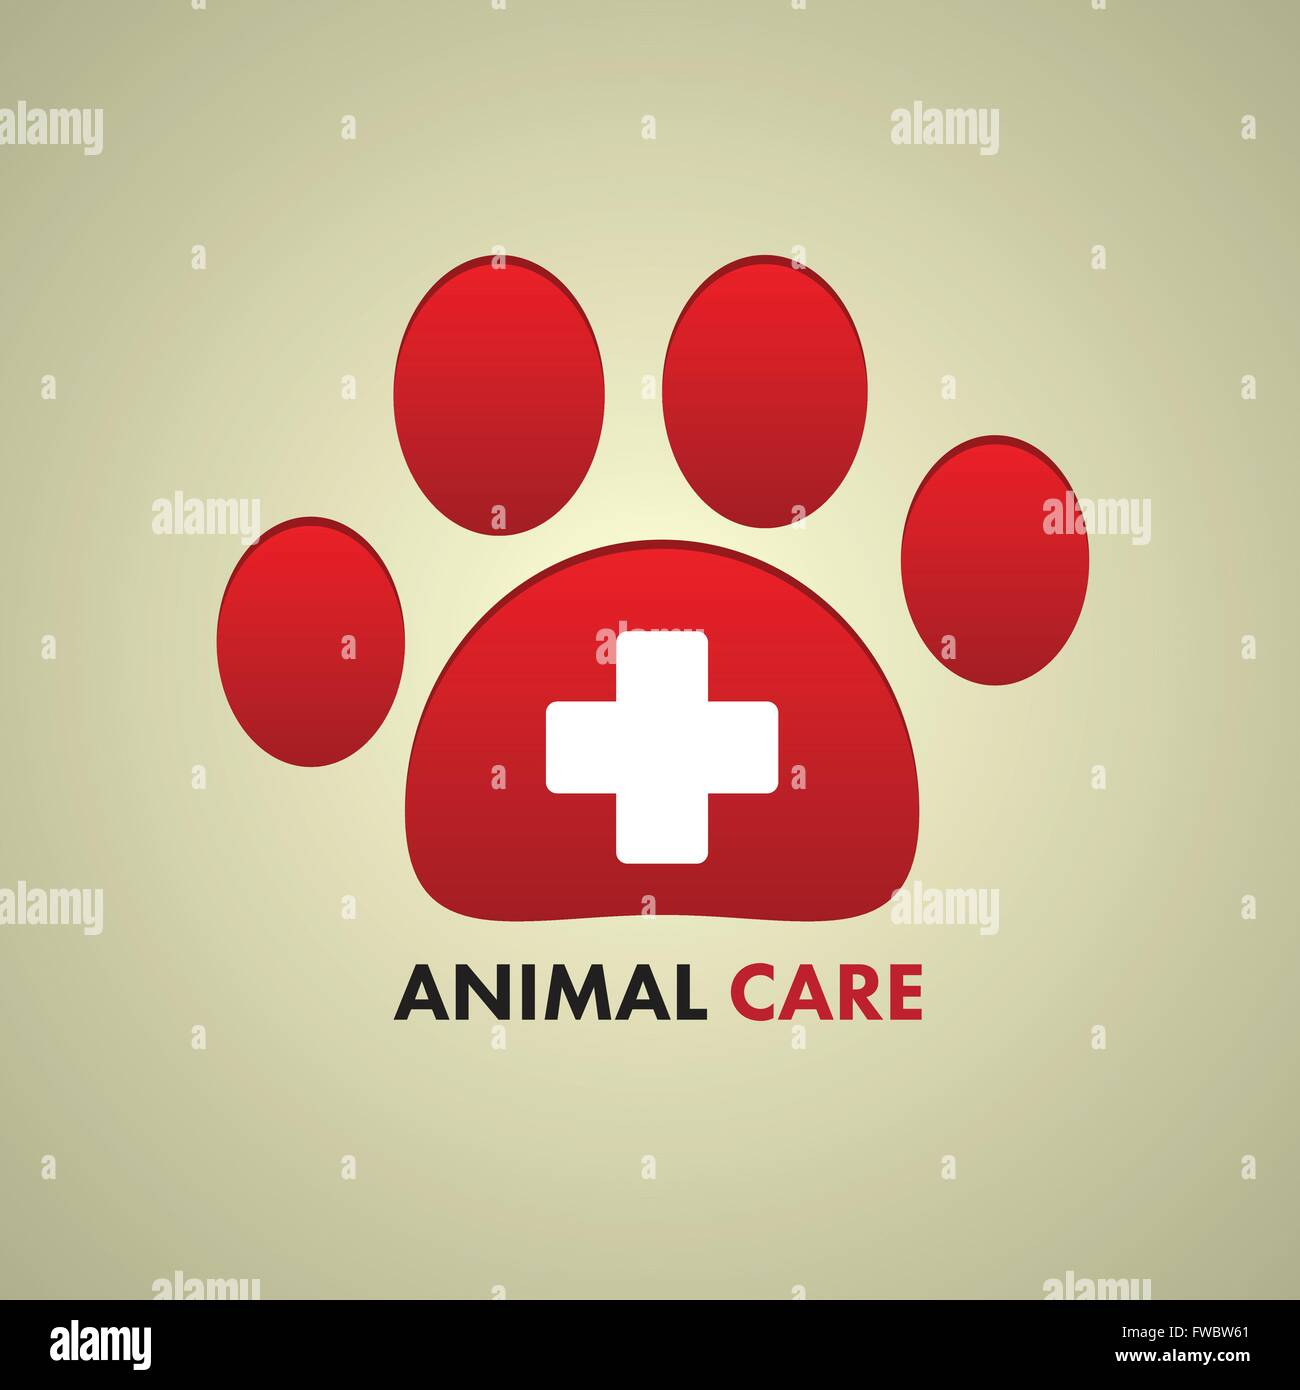 aw print and cross sign. Vector illustration. Animal care symbol. - Stock Vector